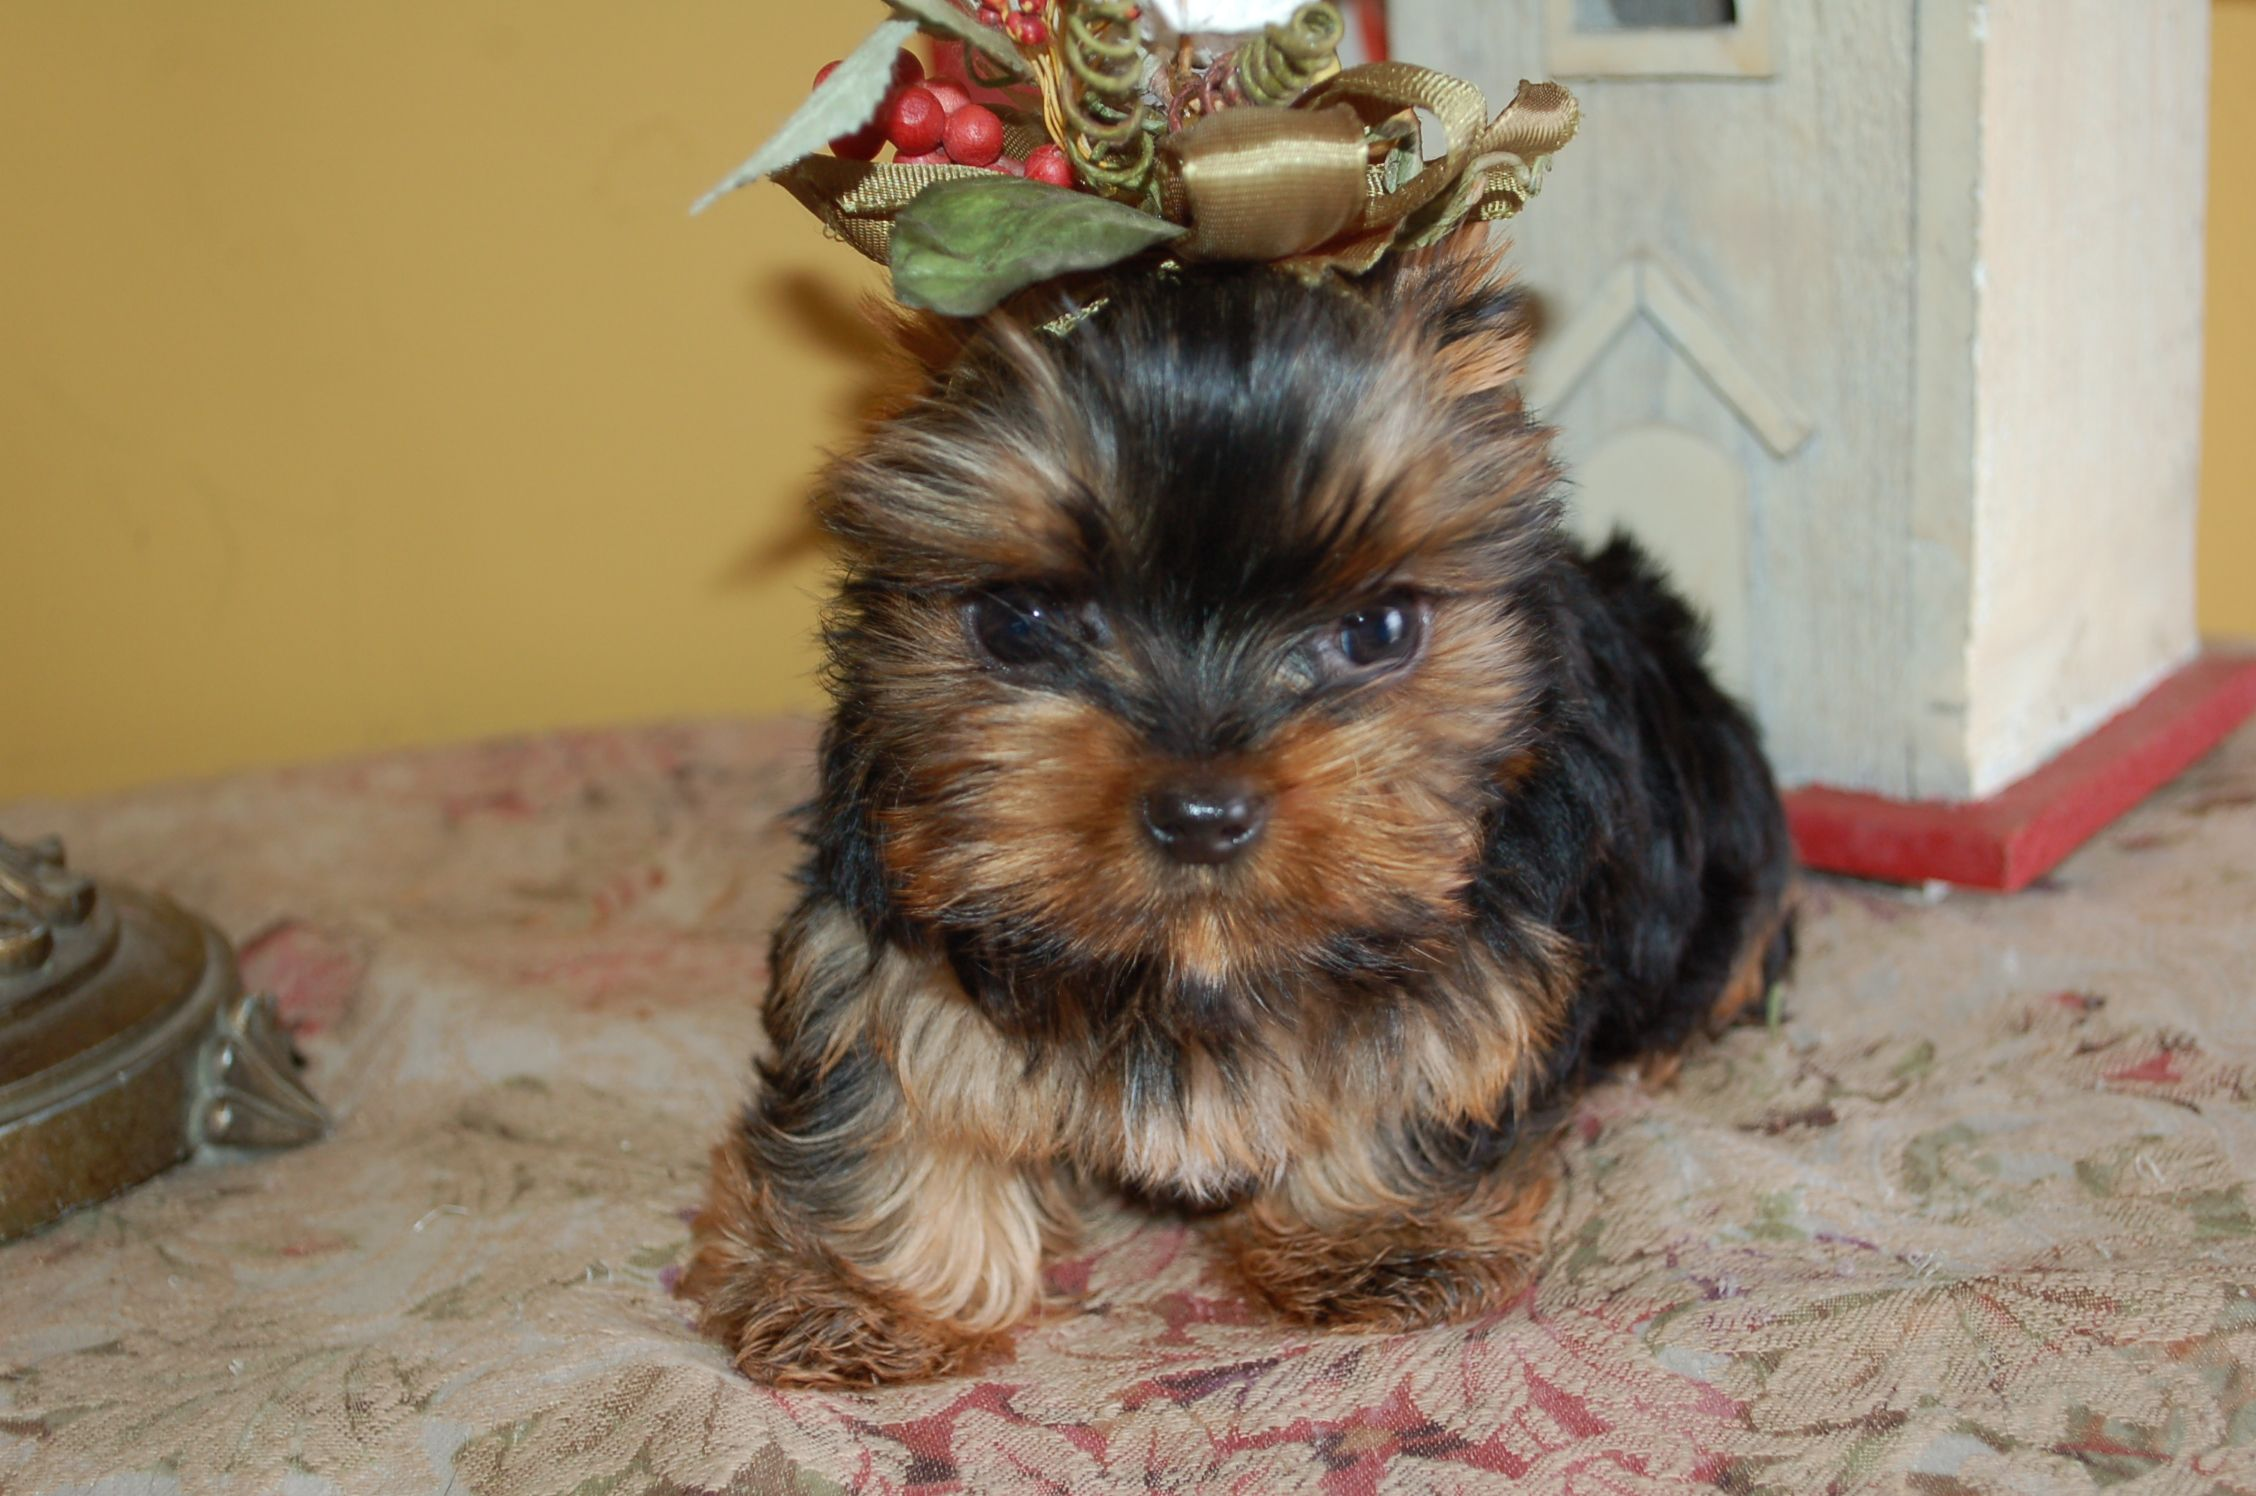 Beautiful Girl That Cindy Bell Has Now Yorkie Puppy For Sale Yorkie Puppy Teacup Yorkie Puppy